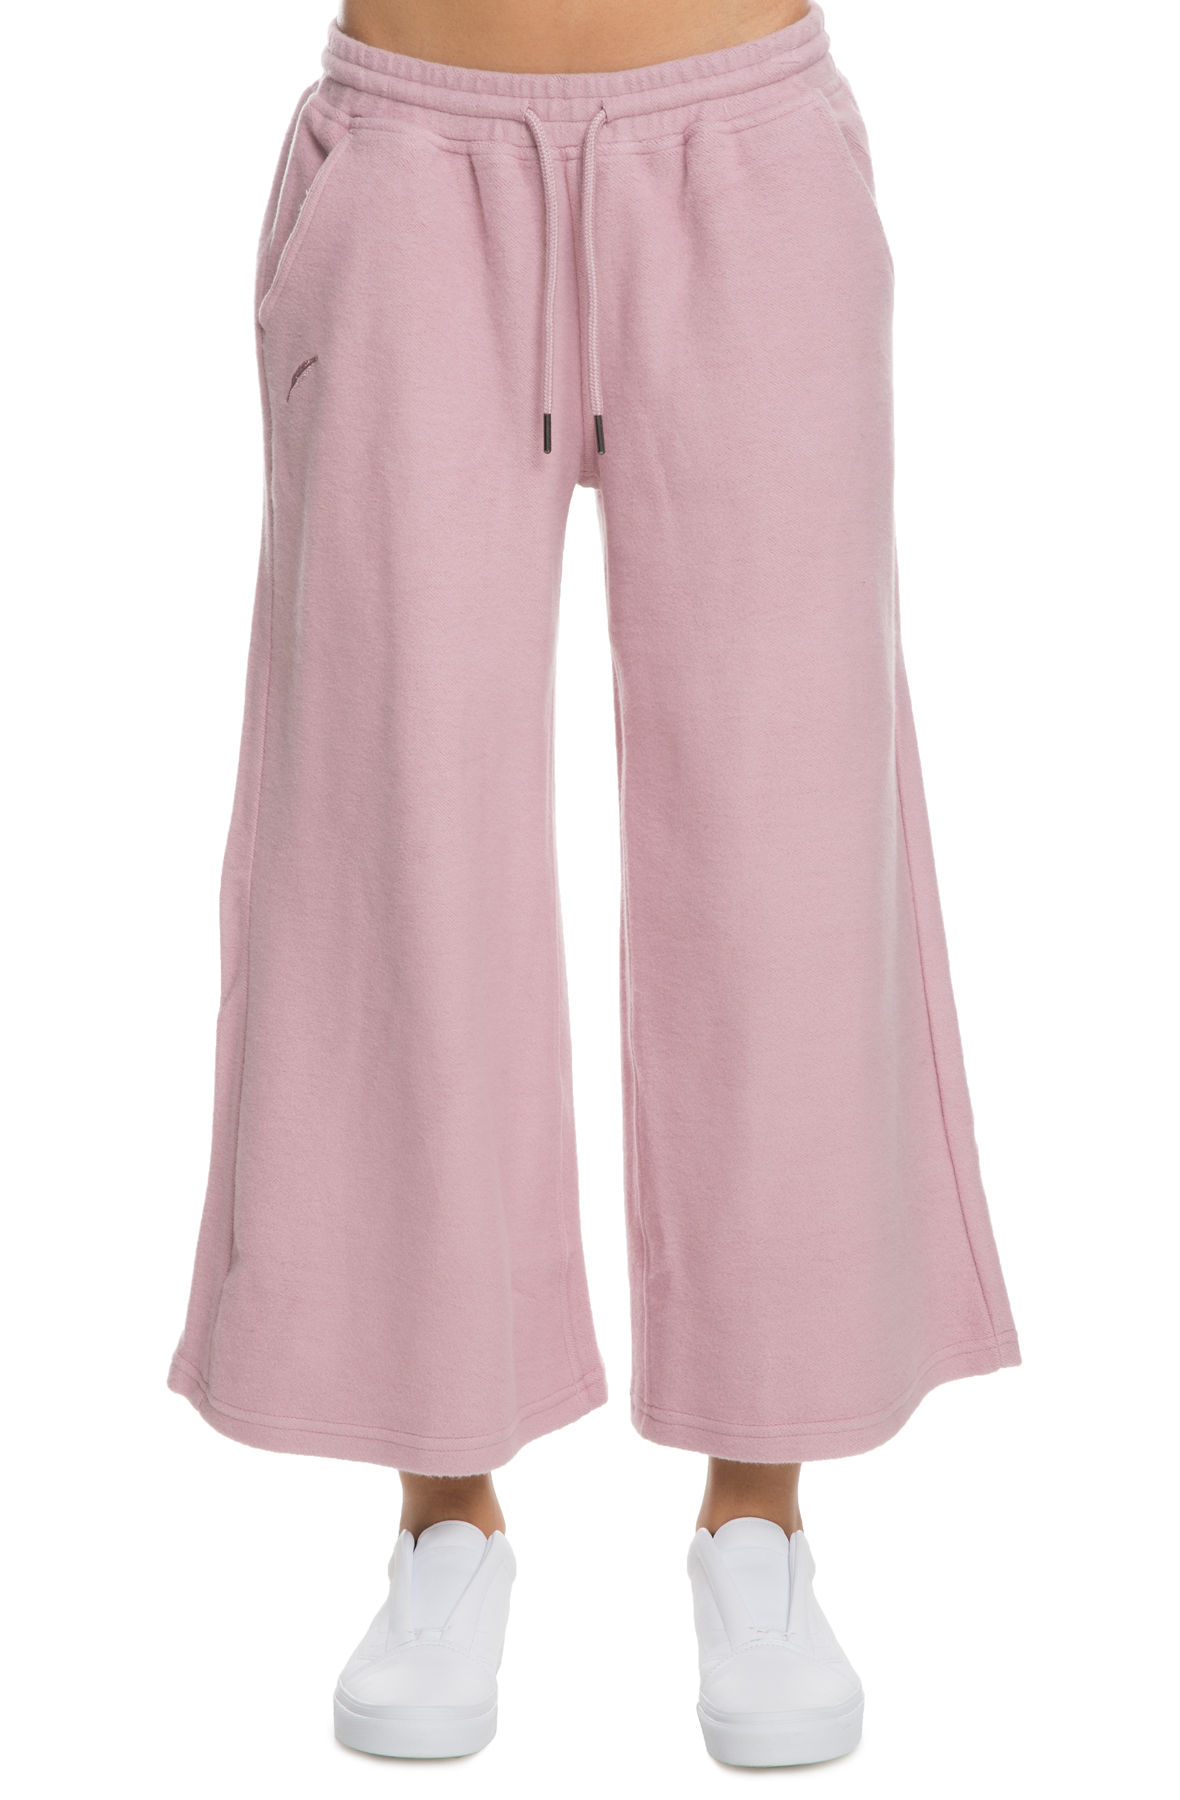 Image of The Jazzy Pants in Pink